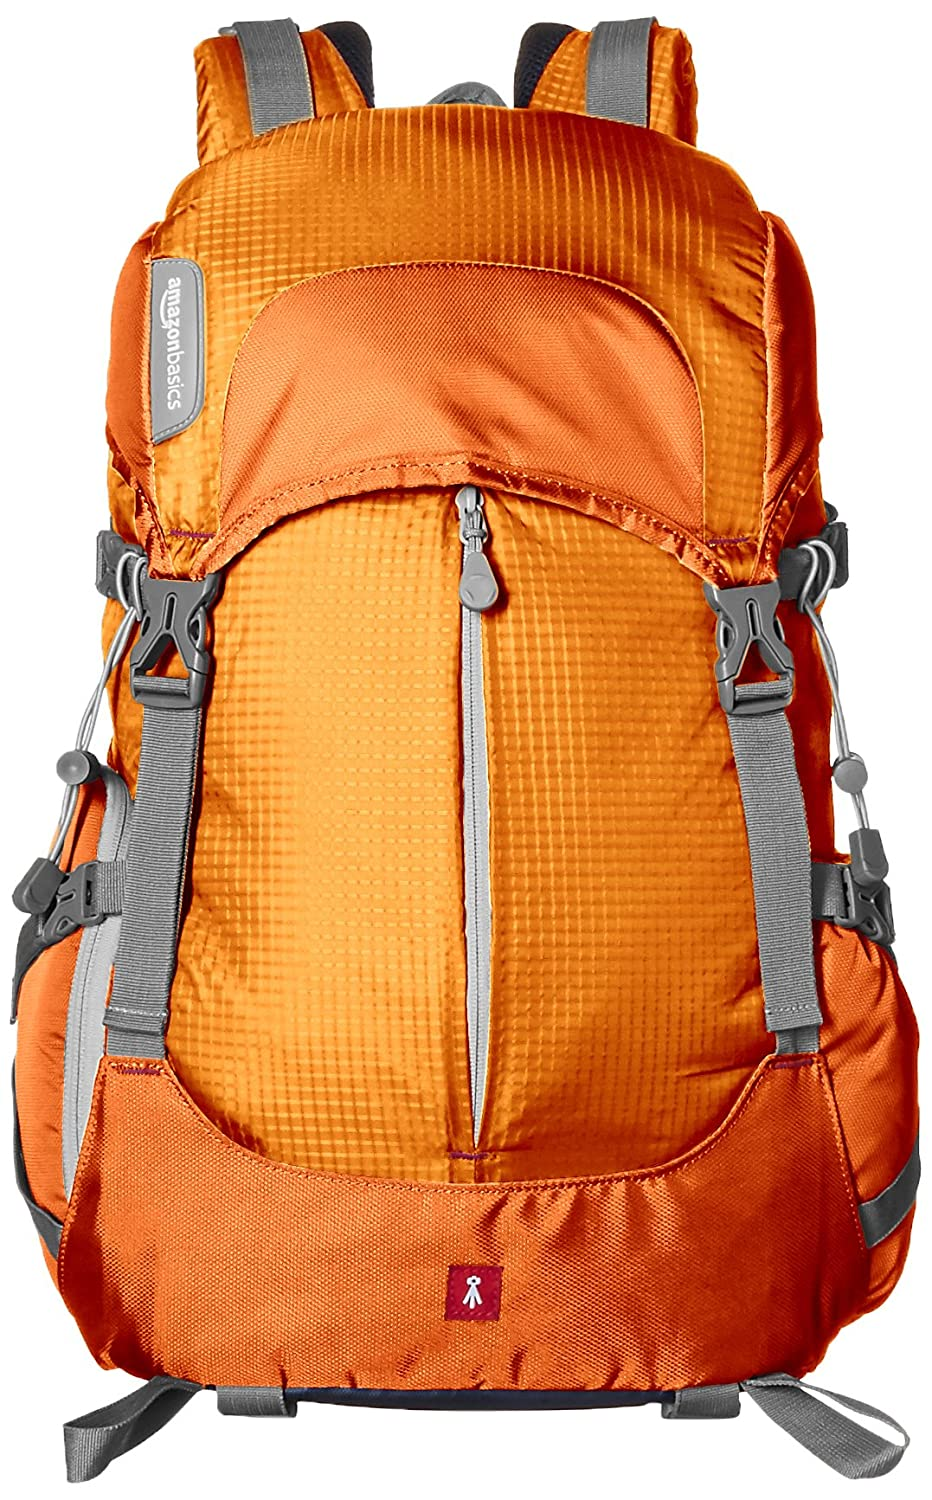 AmazonBasics – Kamera-Rucksack (Orange)